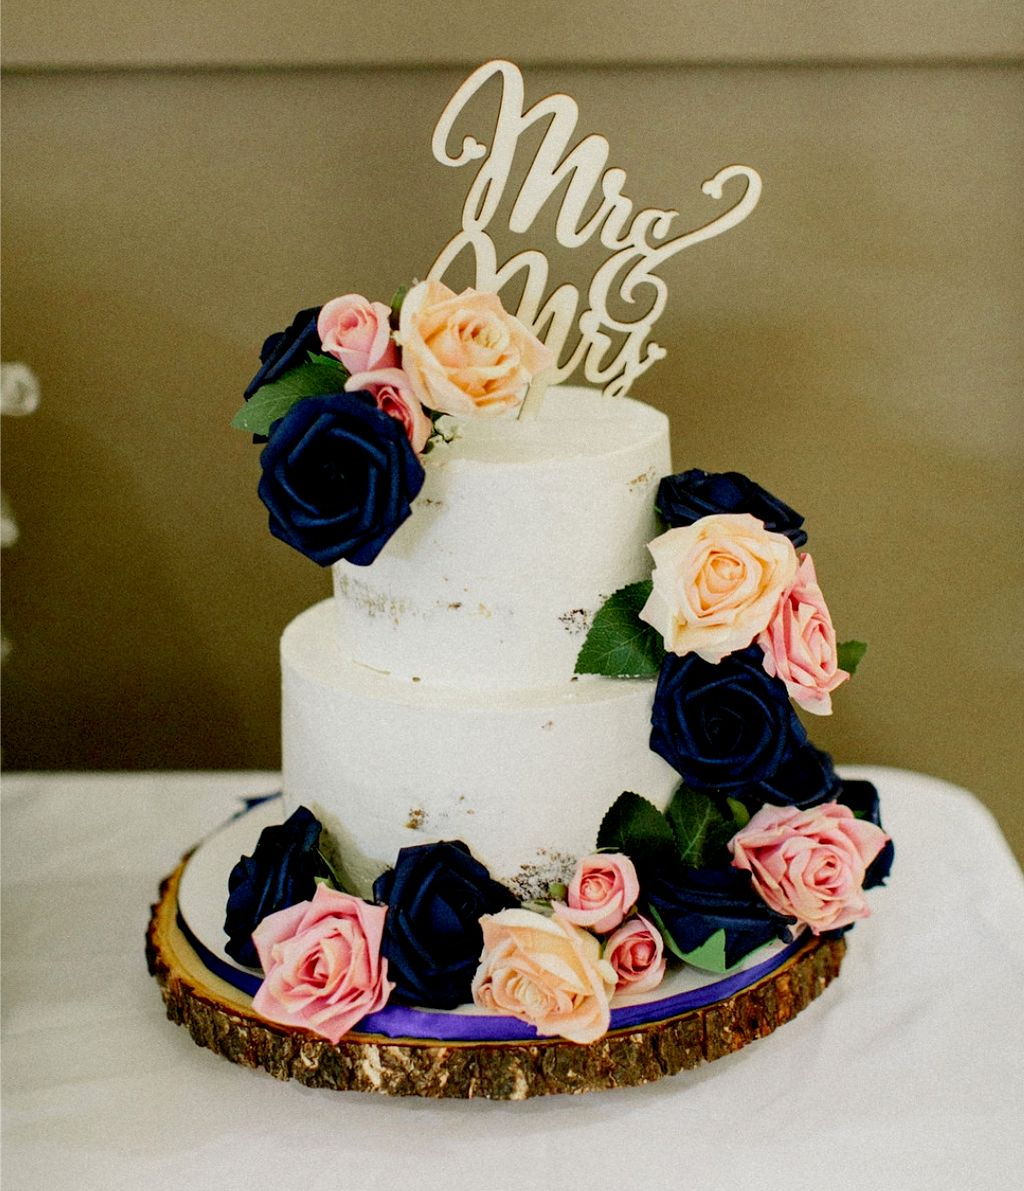 Wedding Cakes - Smyrna 2020